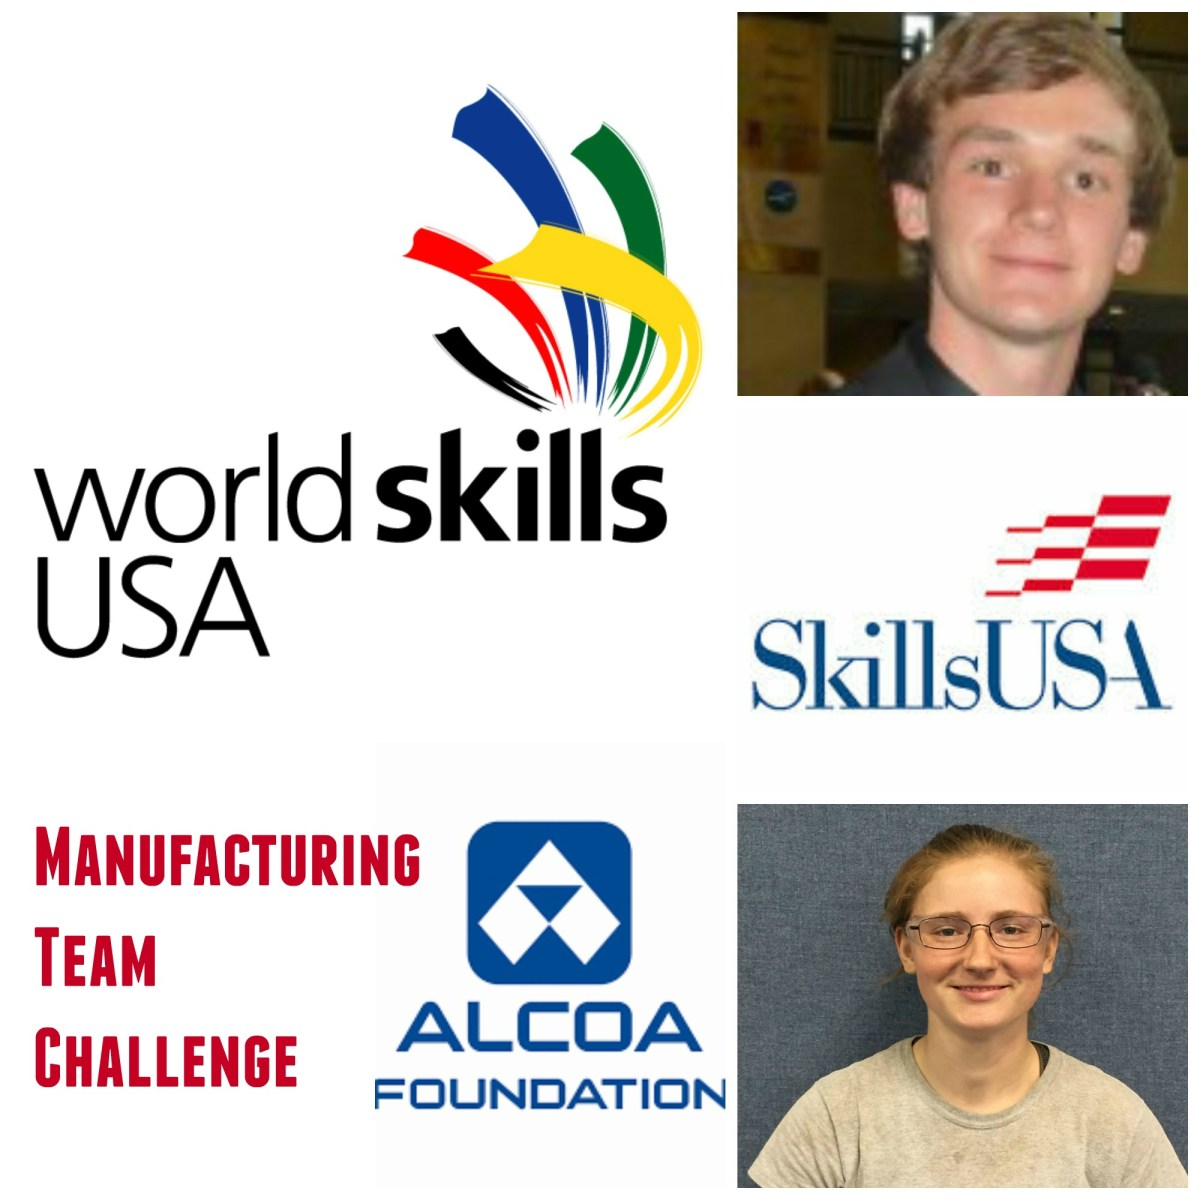 Introduction to SkillsUSA and the WorldSkills MTC Team Sponsored by Alcoa Foundation